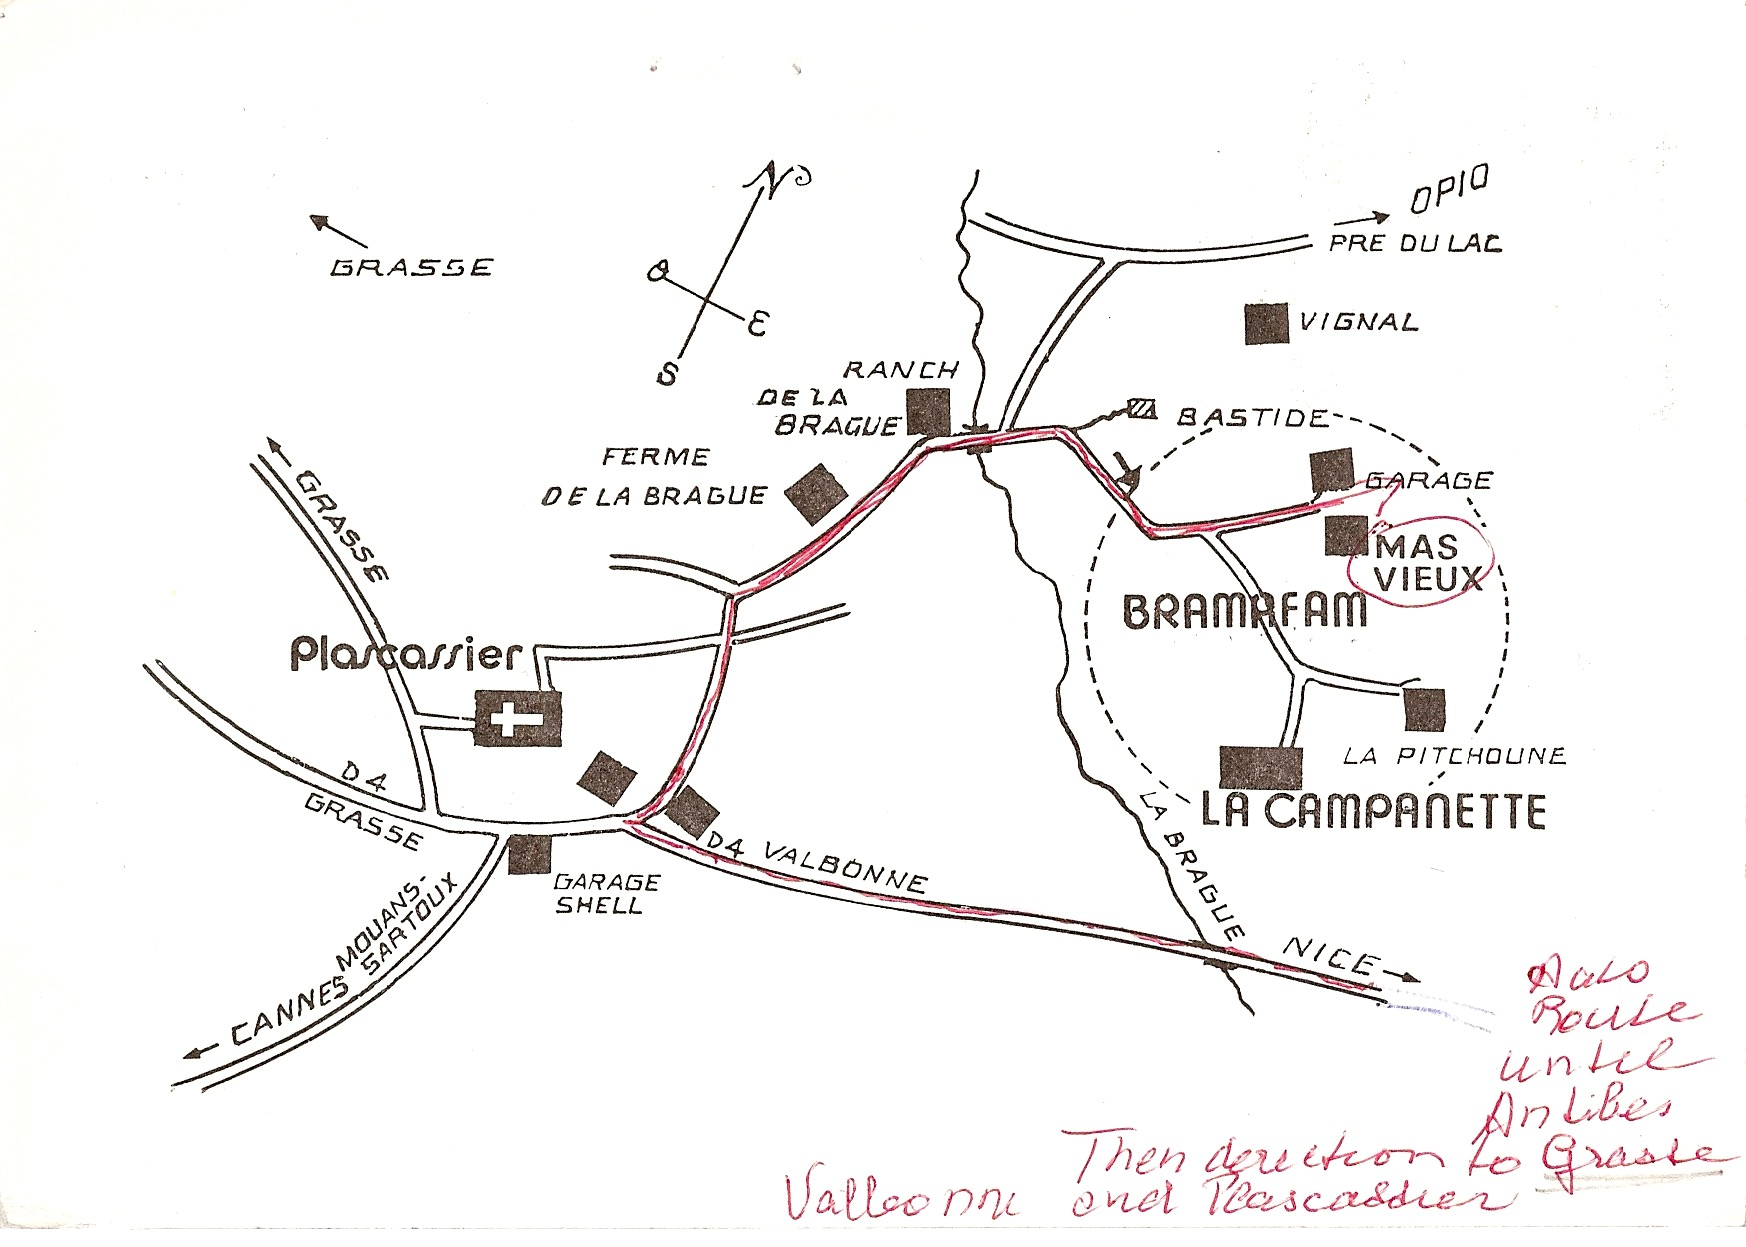 Julia Child - Simone Beck's postcard map of Bramafam - Atticmag